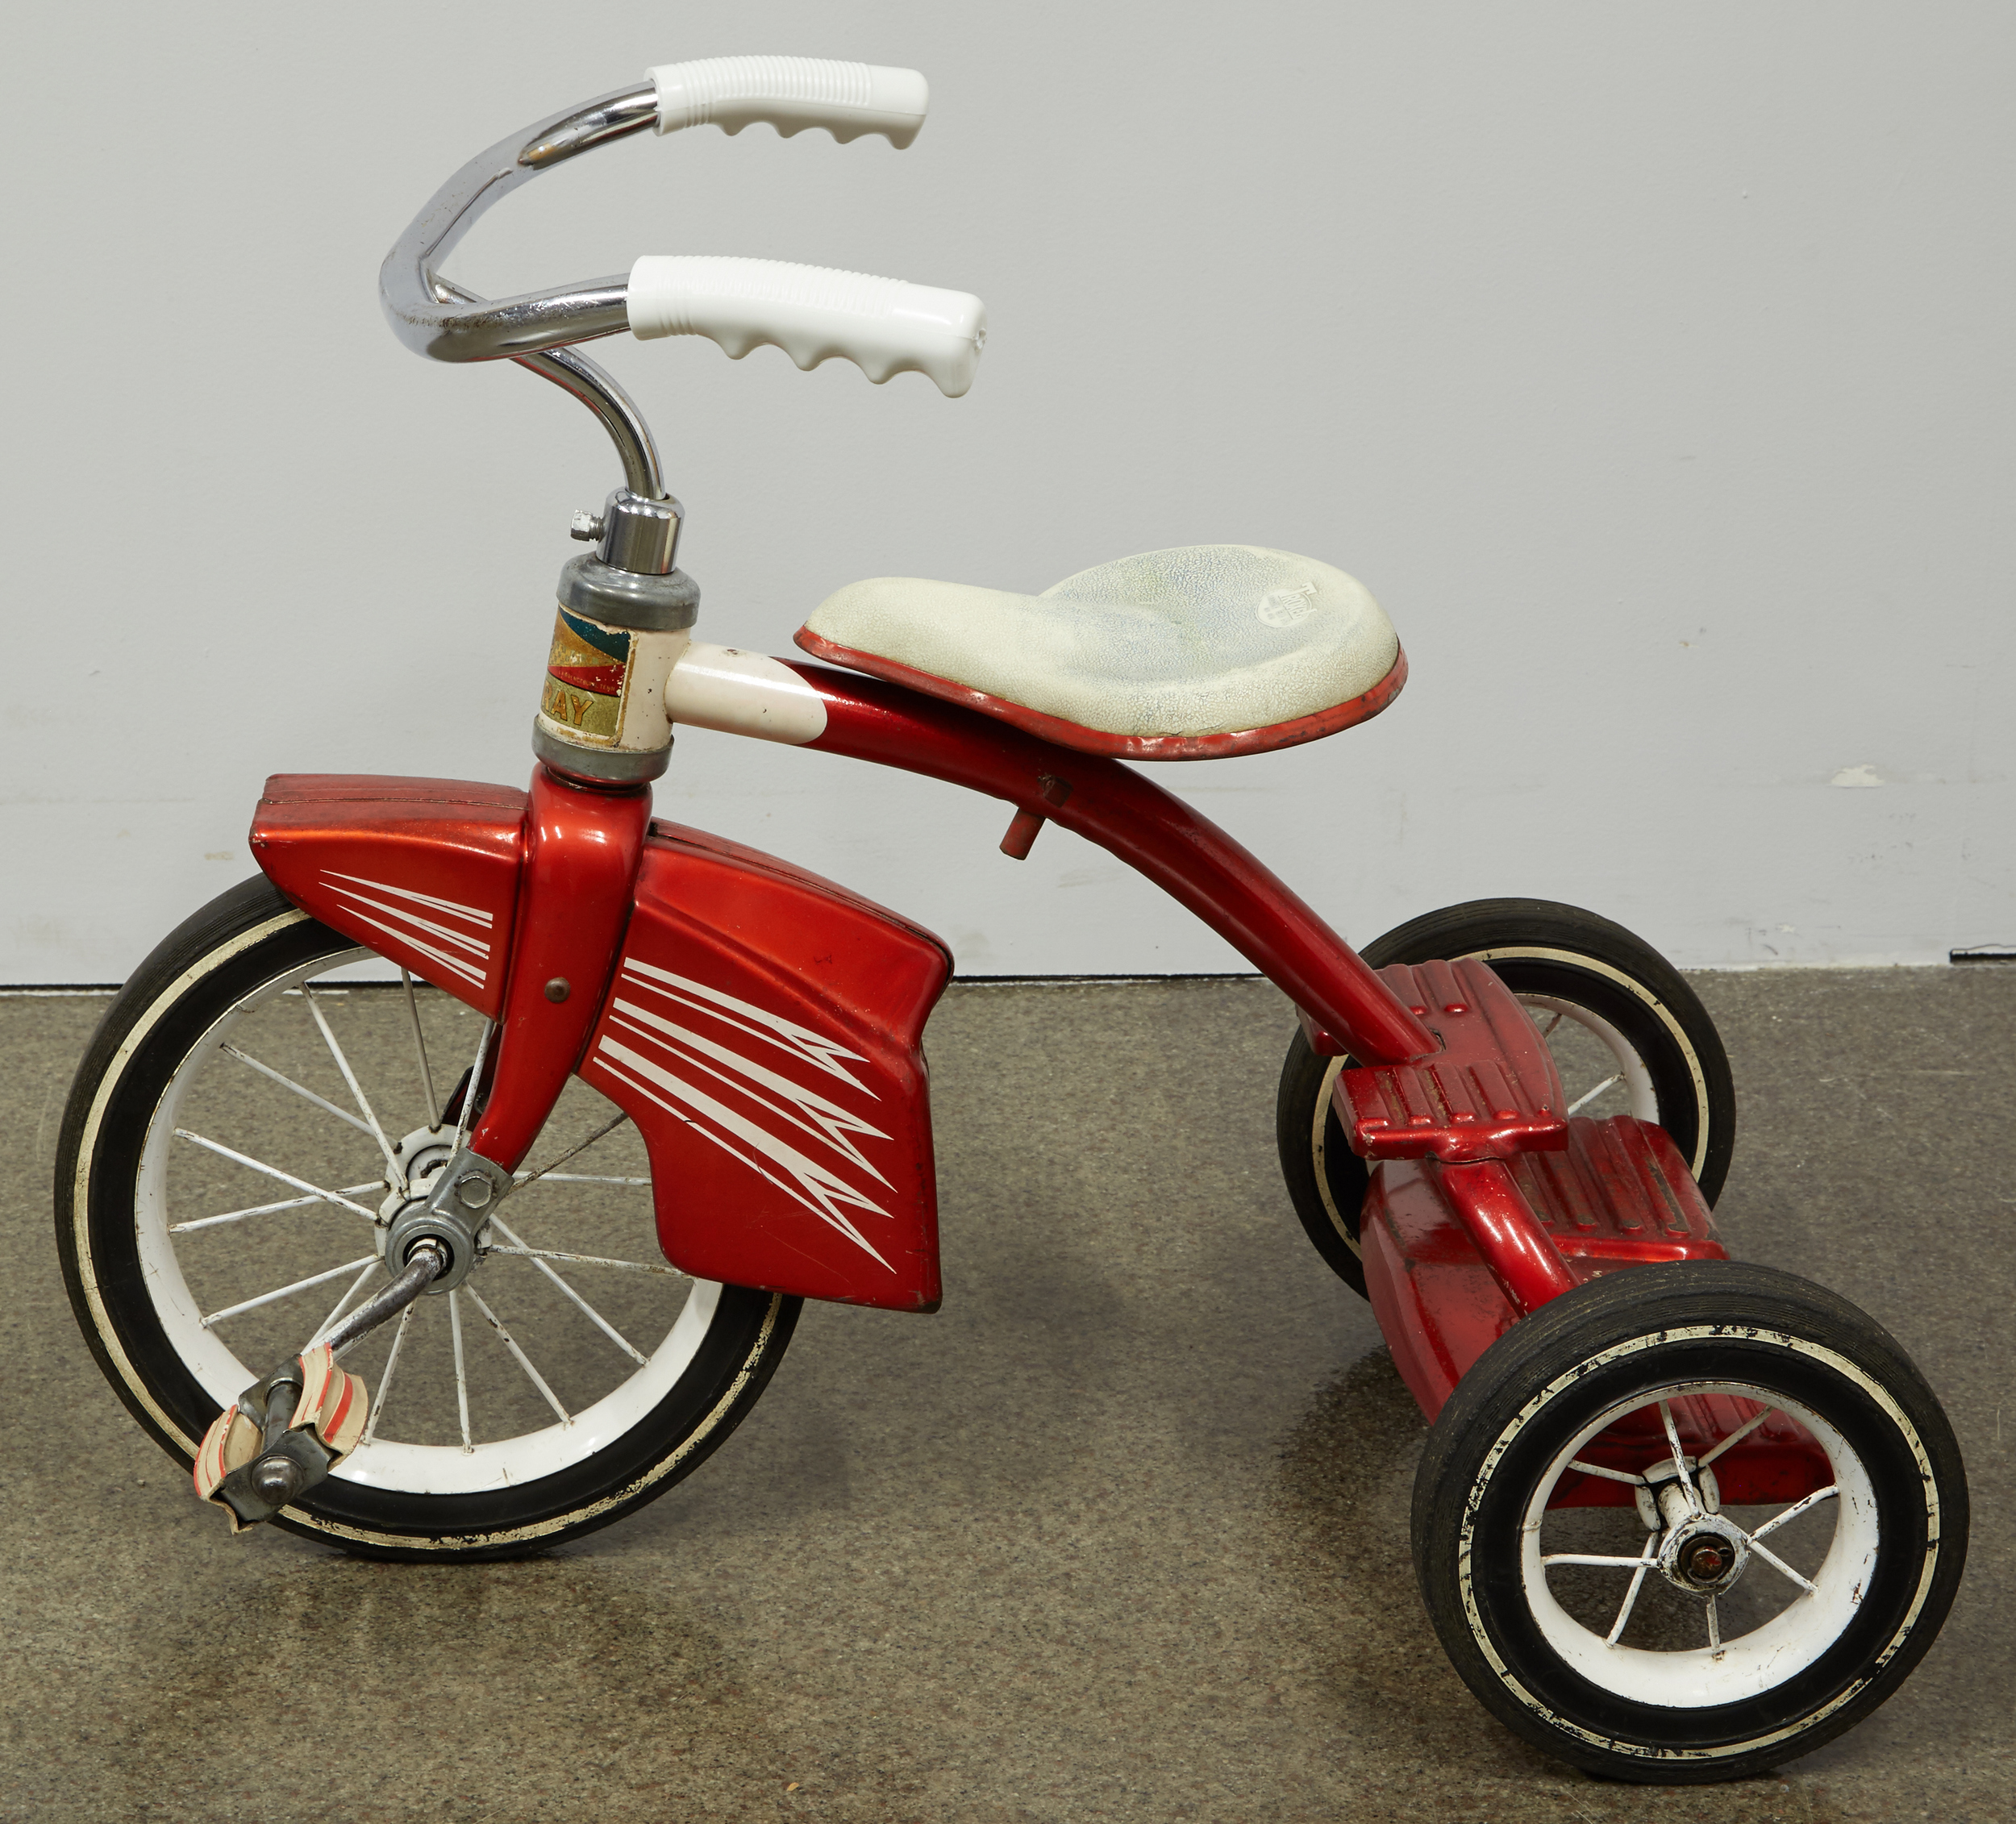 Post-treatment, the charm of Mary's 1964 Murray tricycle shines through.